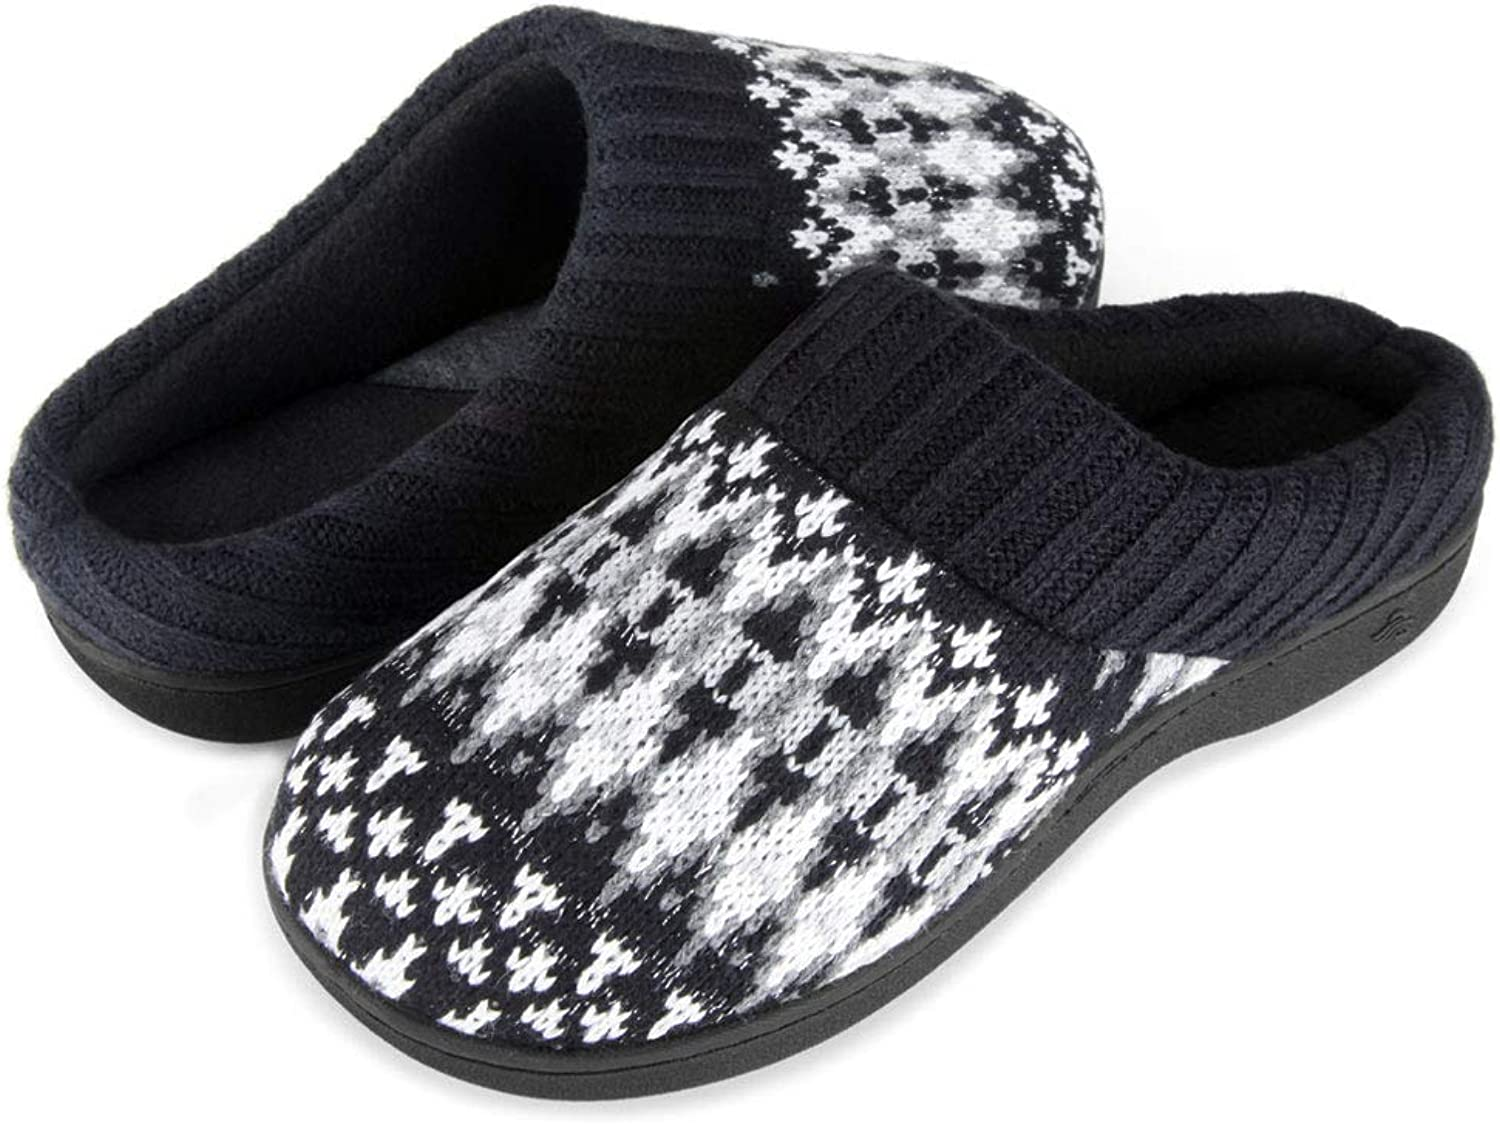 Wishcotton Zigzagger Women's Memory Foam Indoor-Outdoor House Sweater Knit Slippers with Ribbed Hand-Knit Collar,Black,9-10 M US